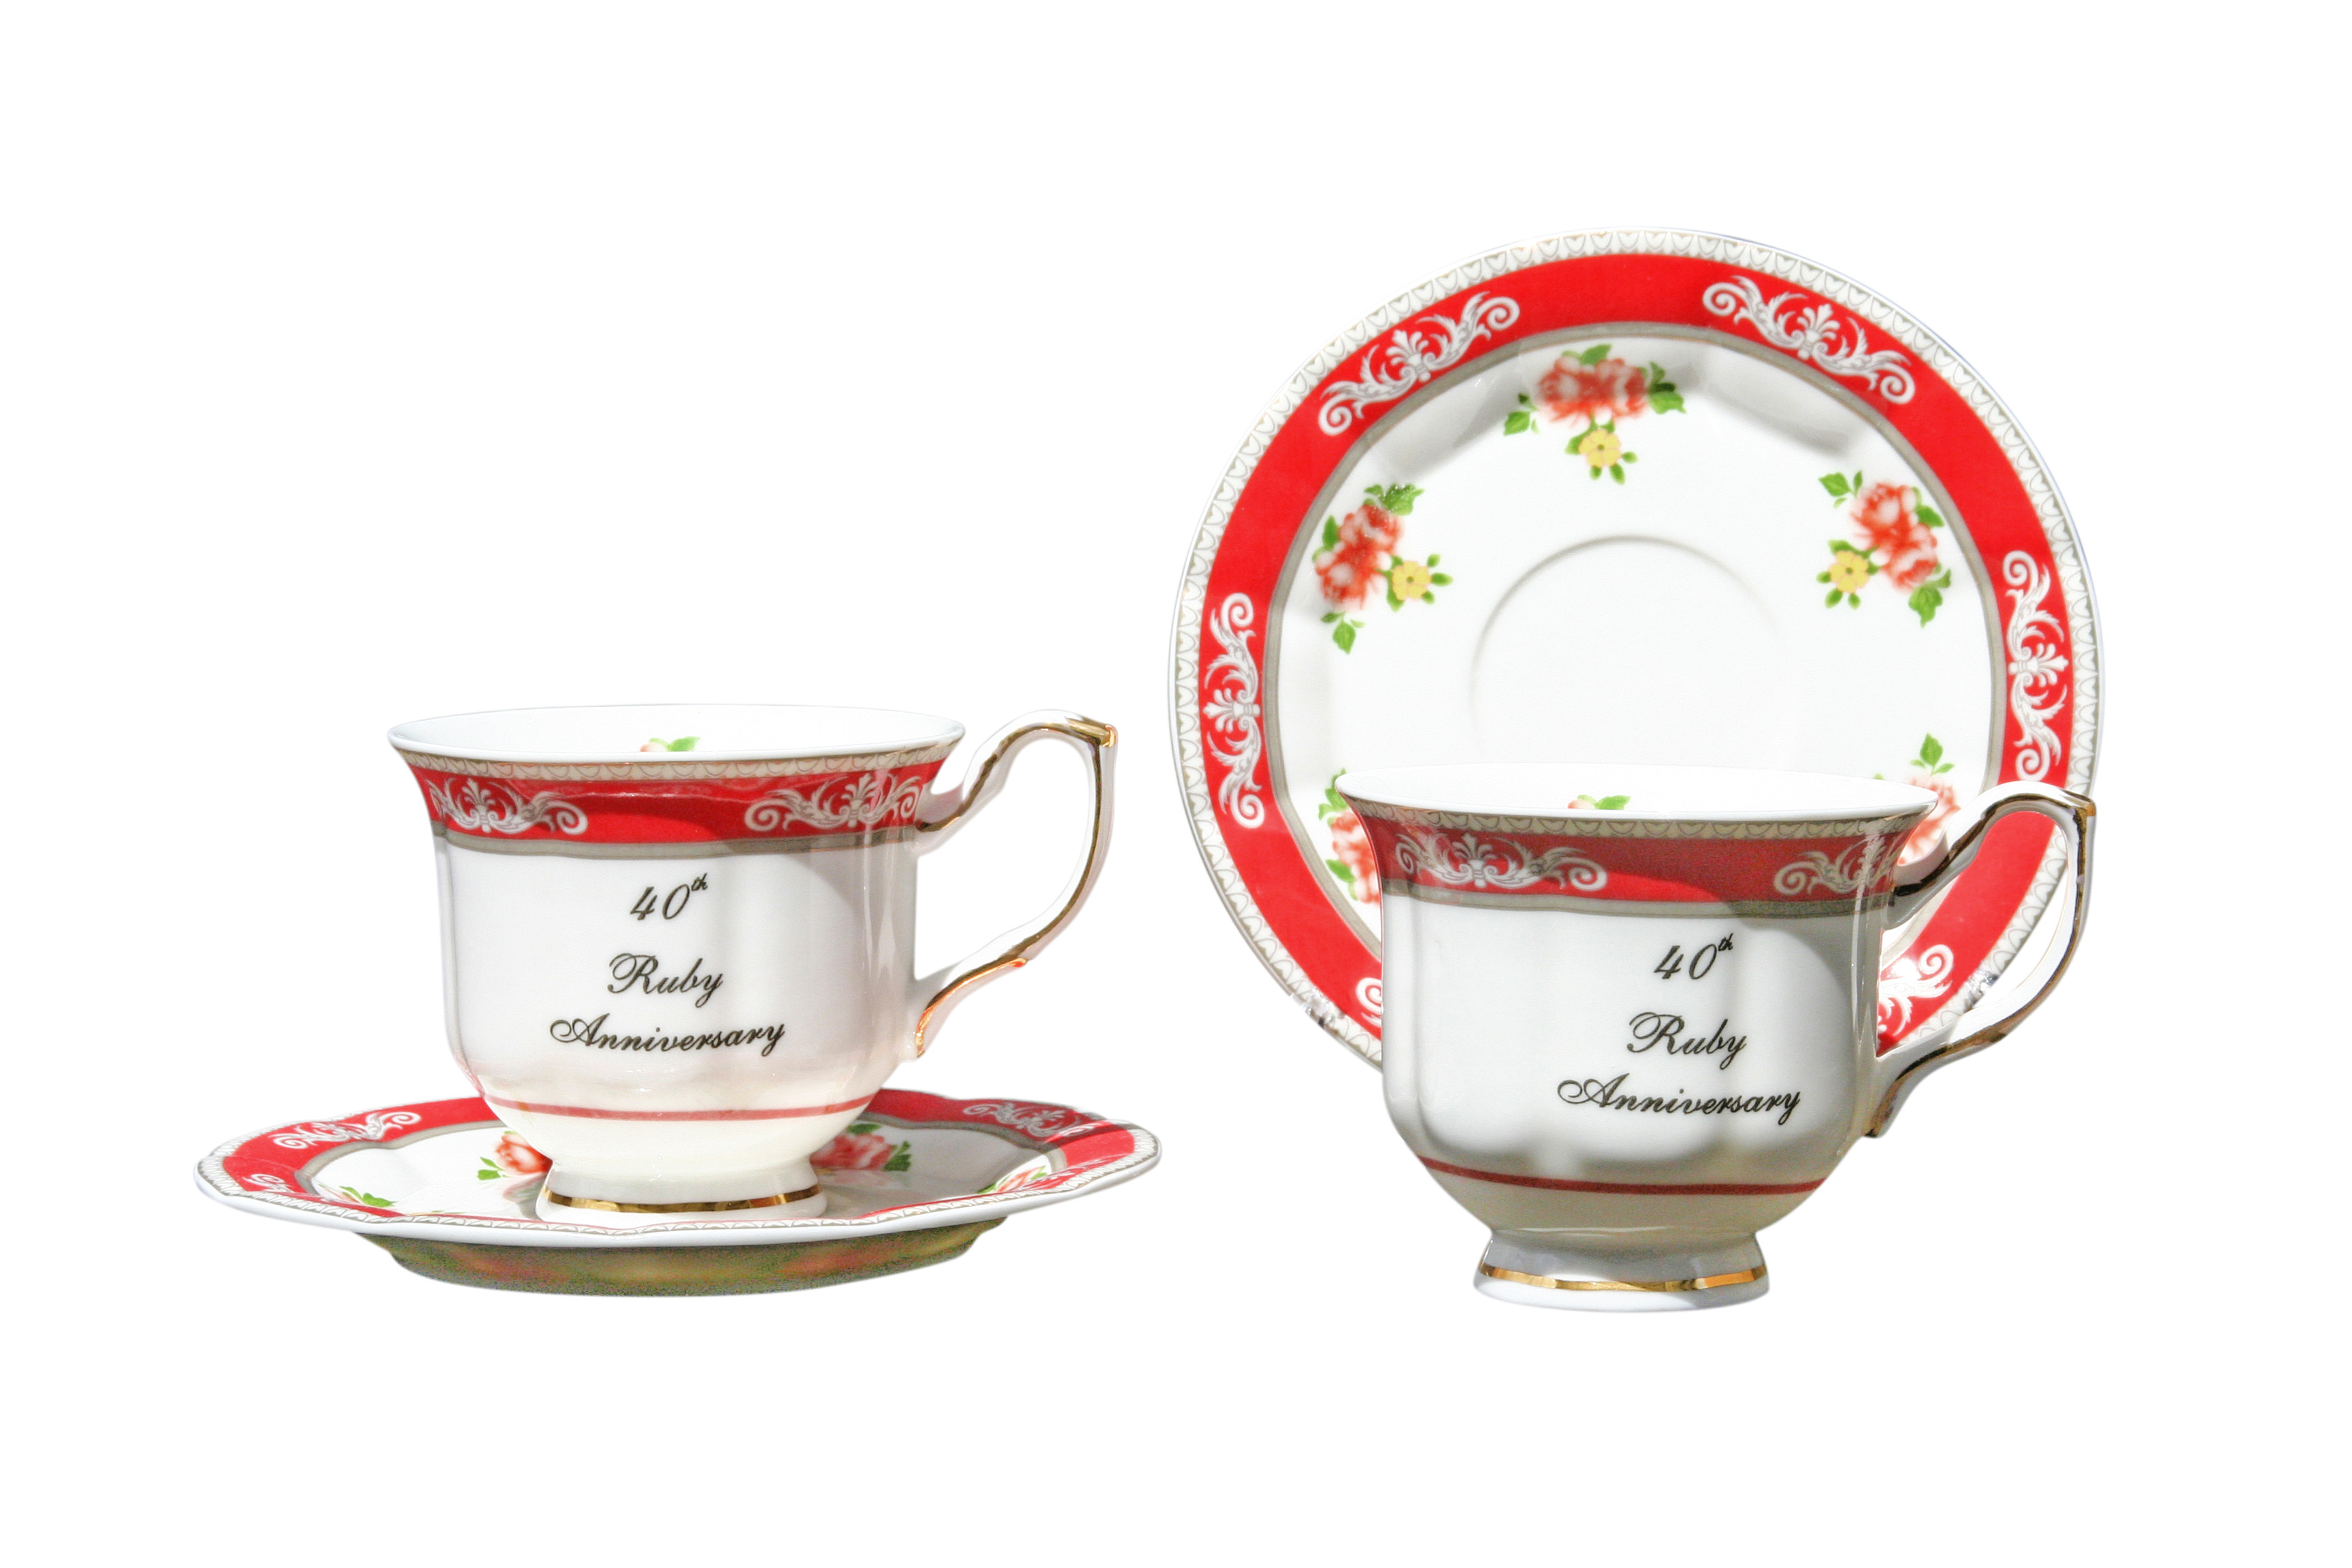 40th Anniversary 2 cup and saucer set